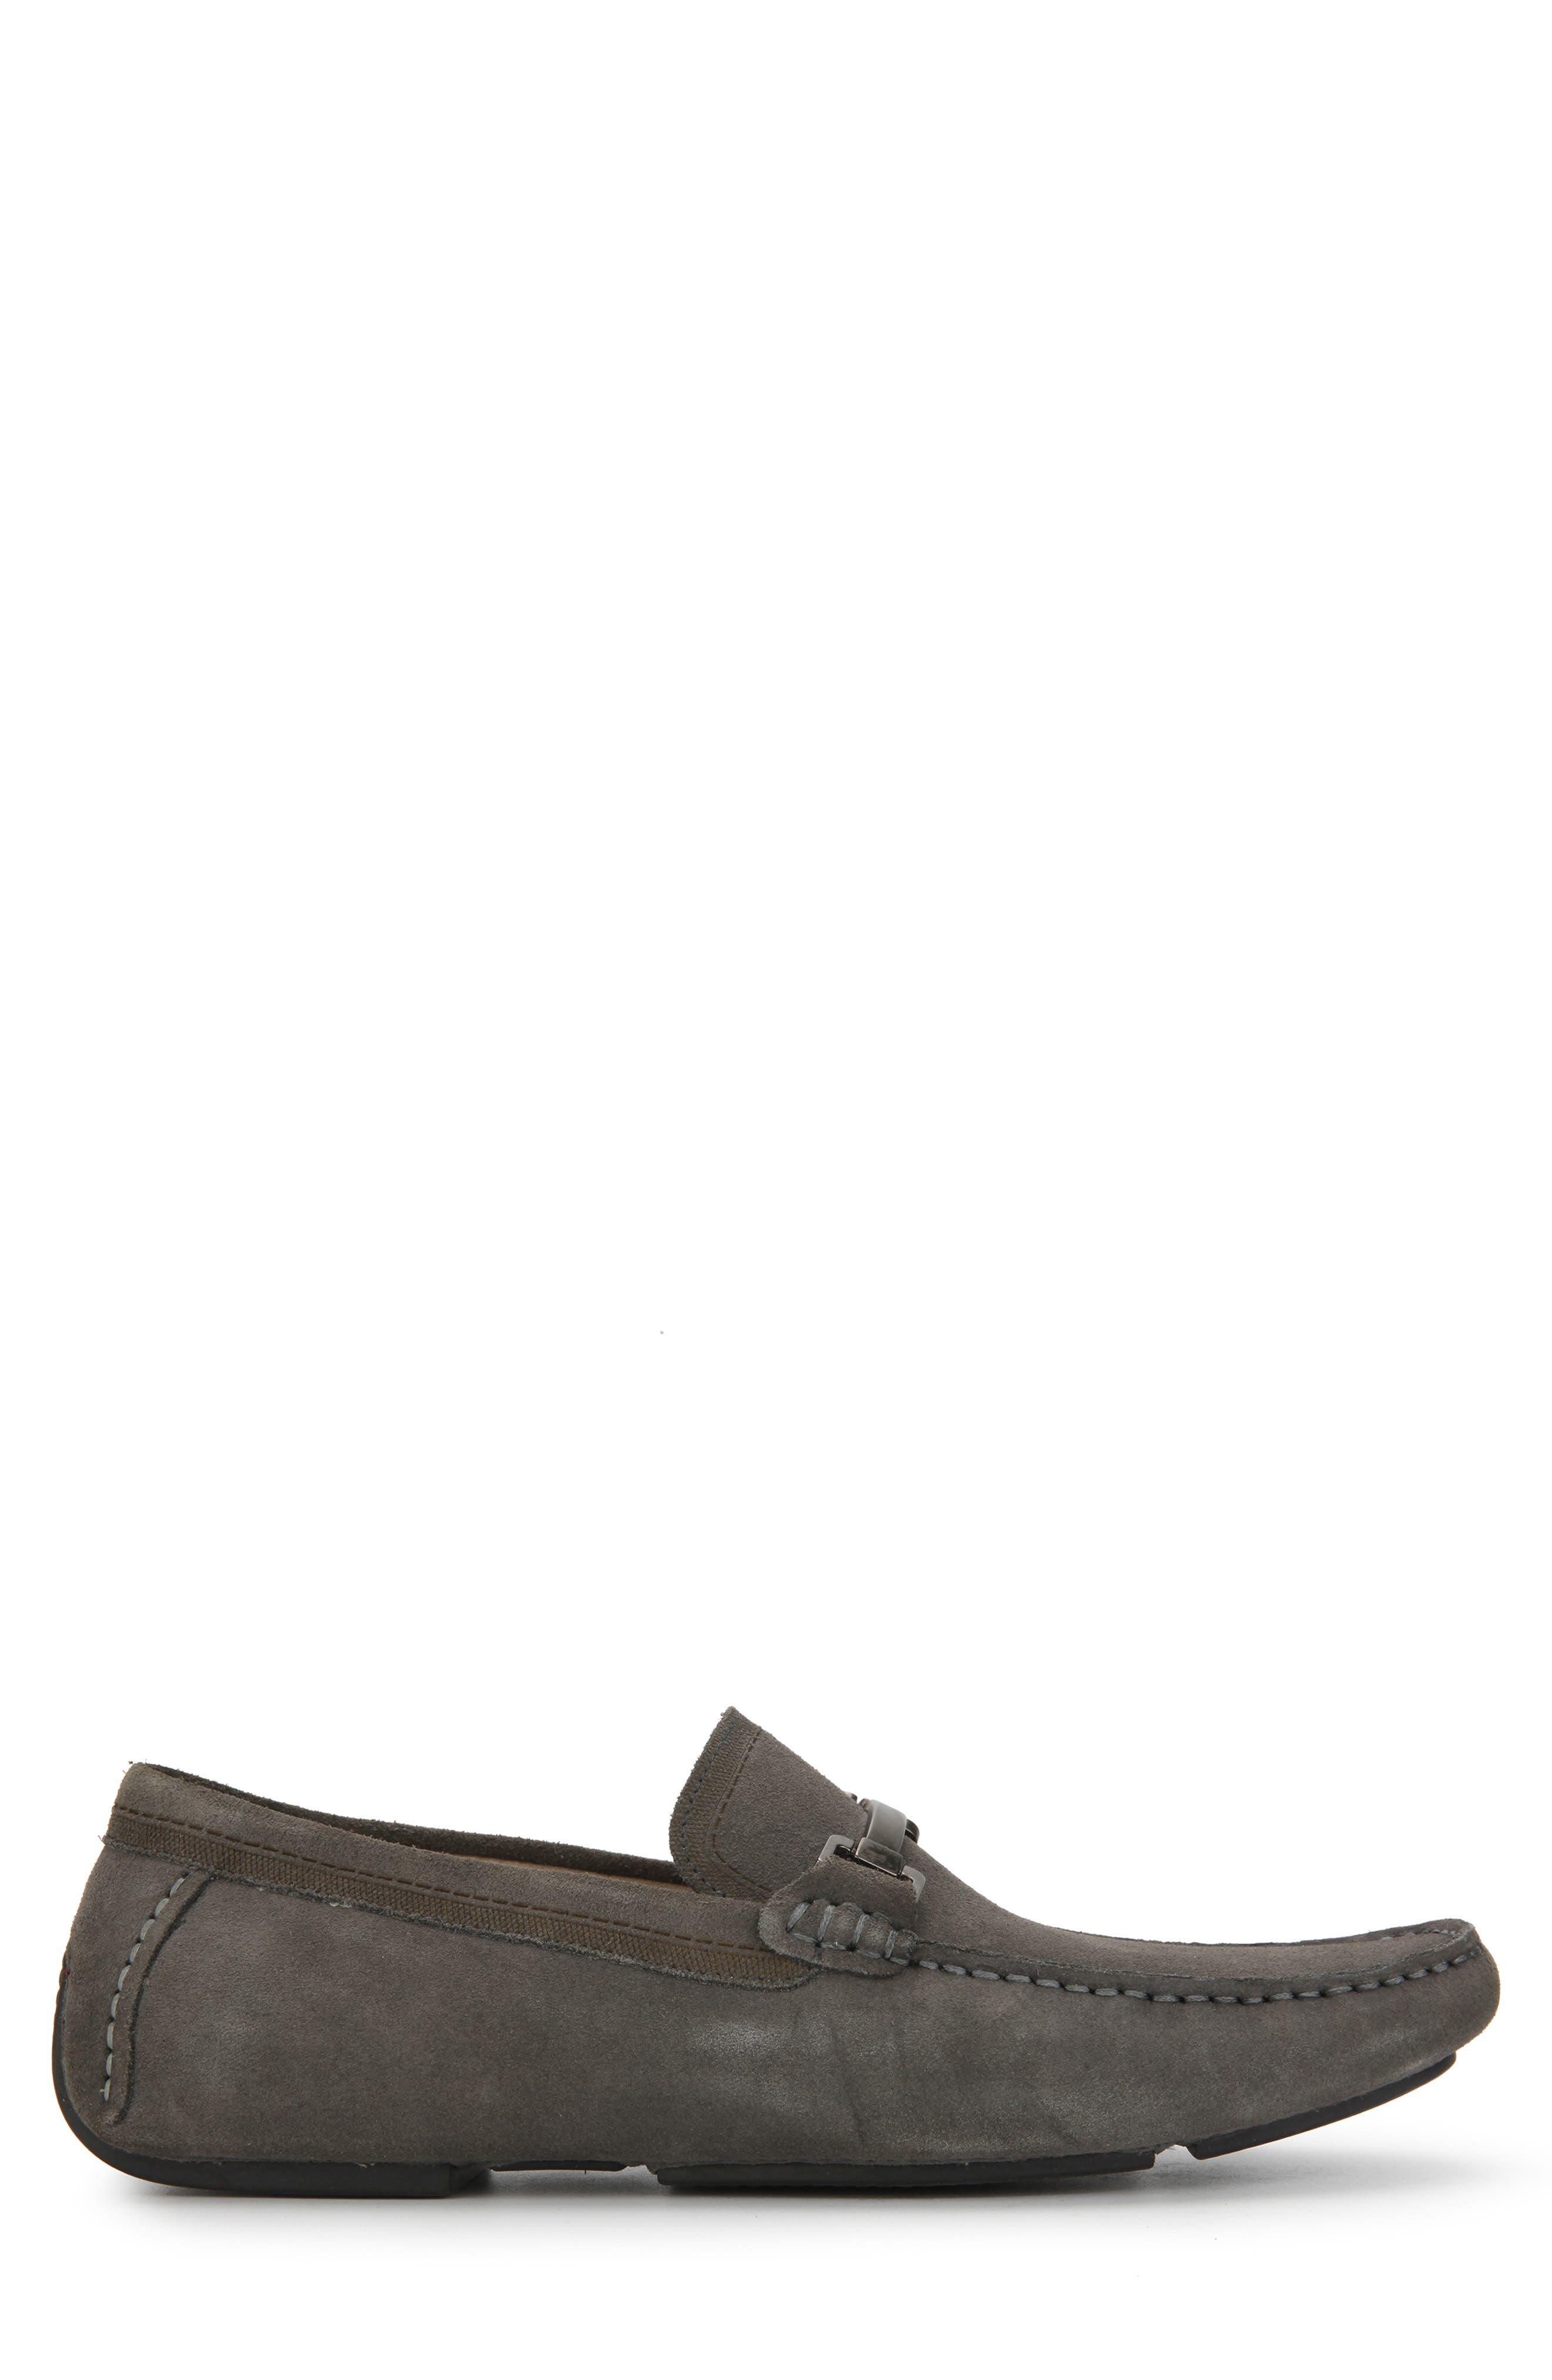 REACTION KENNETH COLE, Sound Driving Shoe, Alternate thumbnail 2, color, GREY